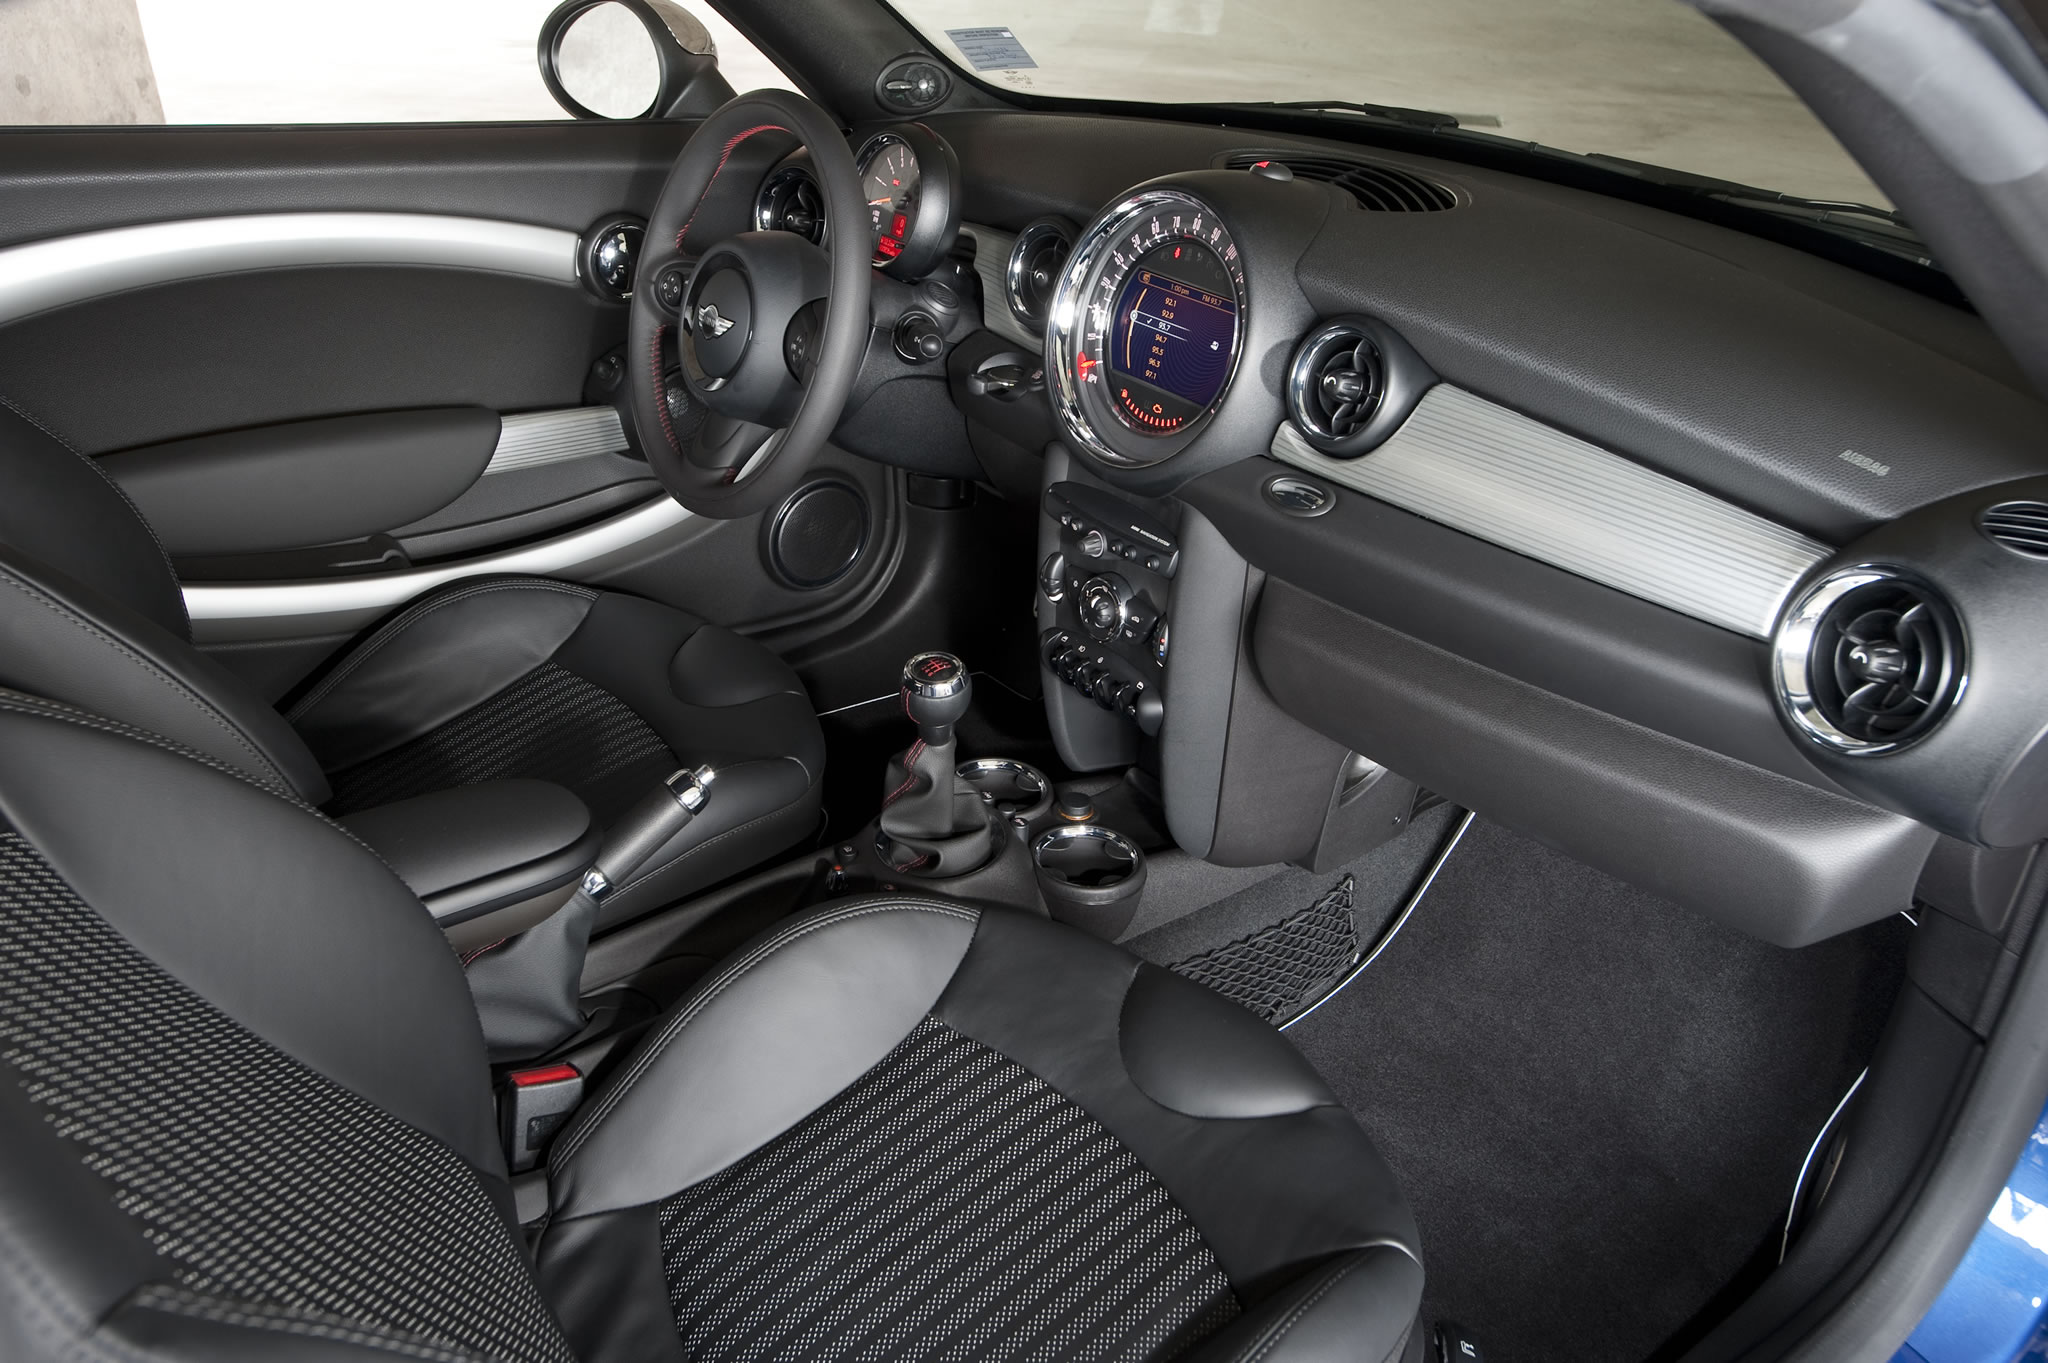 2014 Mini John Cooper Works Coupe Interior Photo Gray And Black